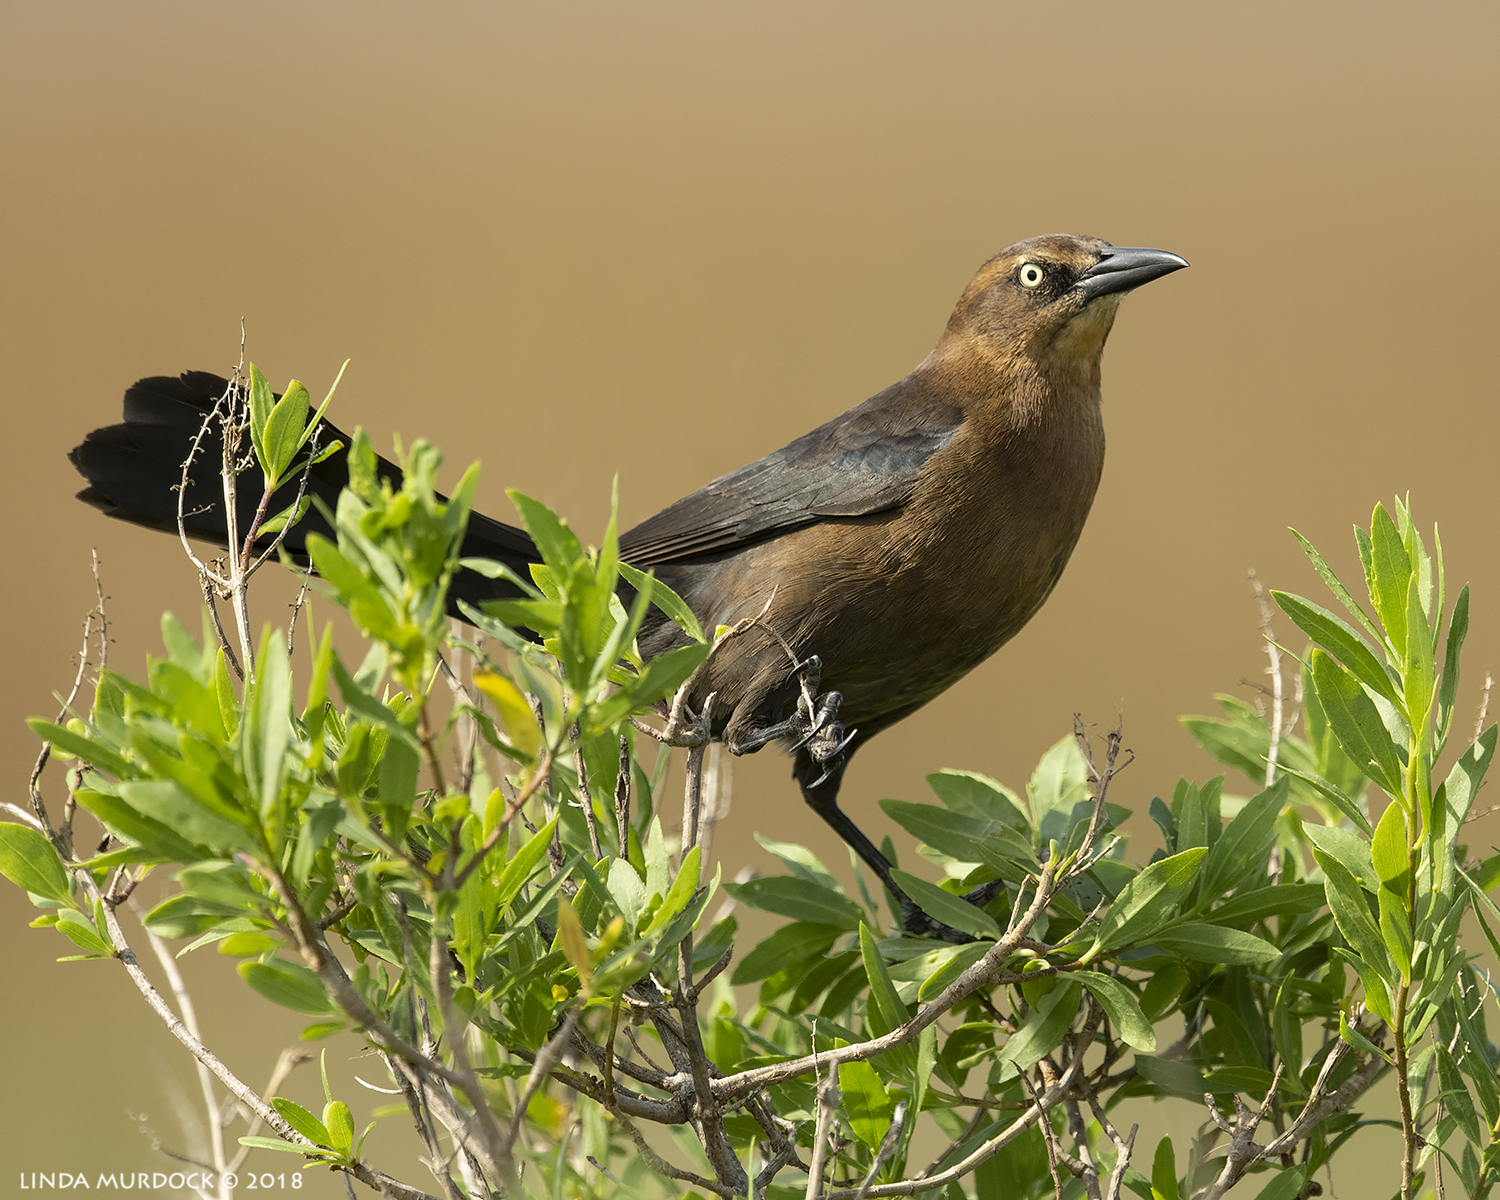 Female Grackle with single-spot focus since the foreground is busy.  Nikon D850 with NIKKOR 500mm f/4E VR with Nikon 1.4x TC ~ 1/2500 sec f/6.3 ISO 1000; braced in truck window